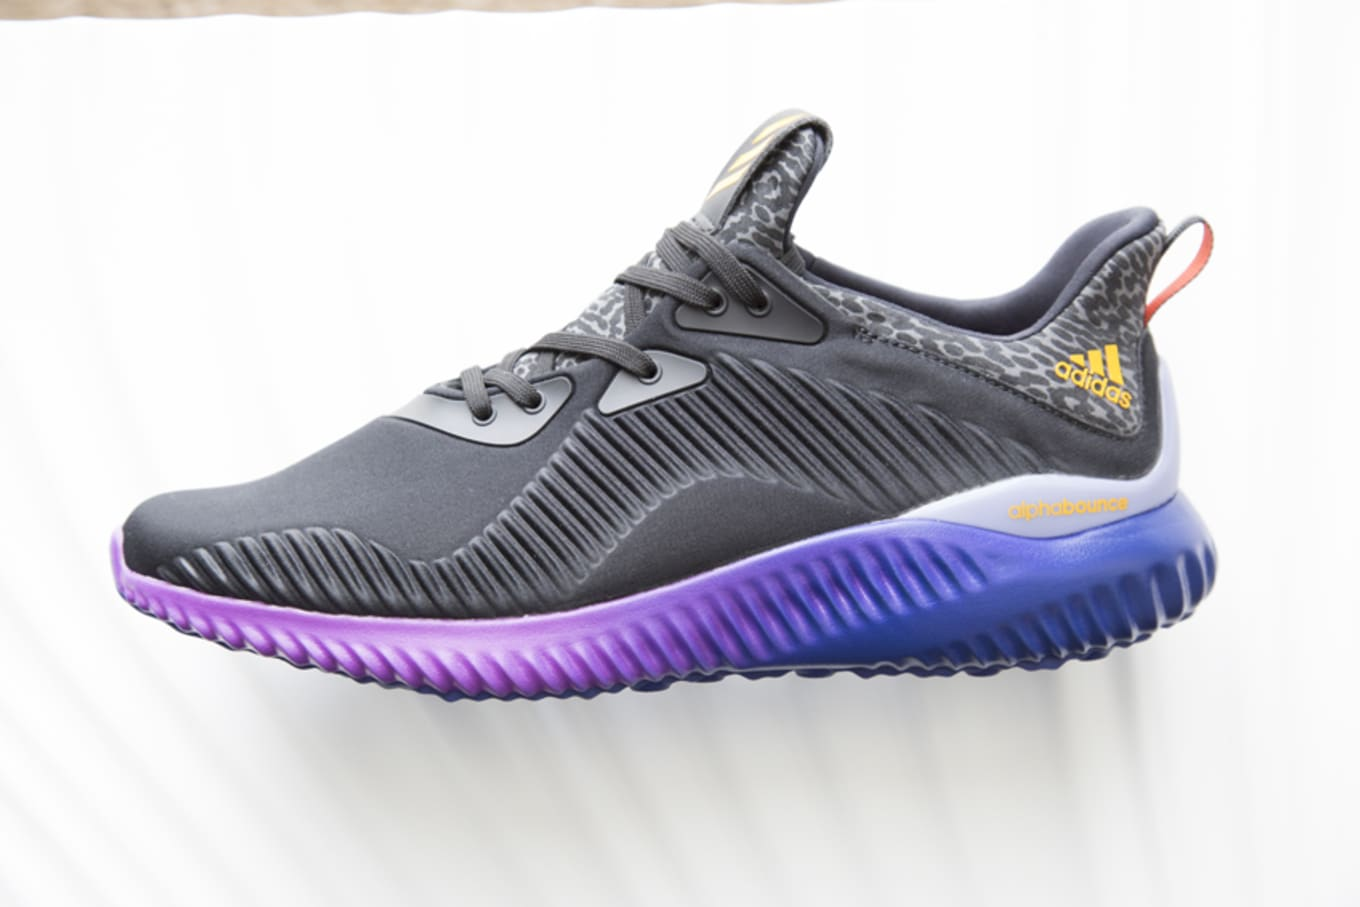 a282ae472 6 Things You Need to Know About the adidas AlphaBOUNCE